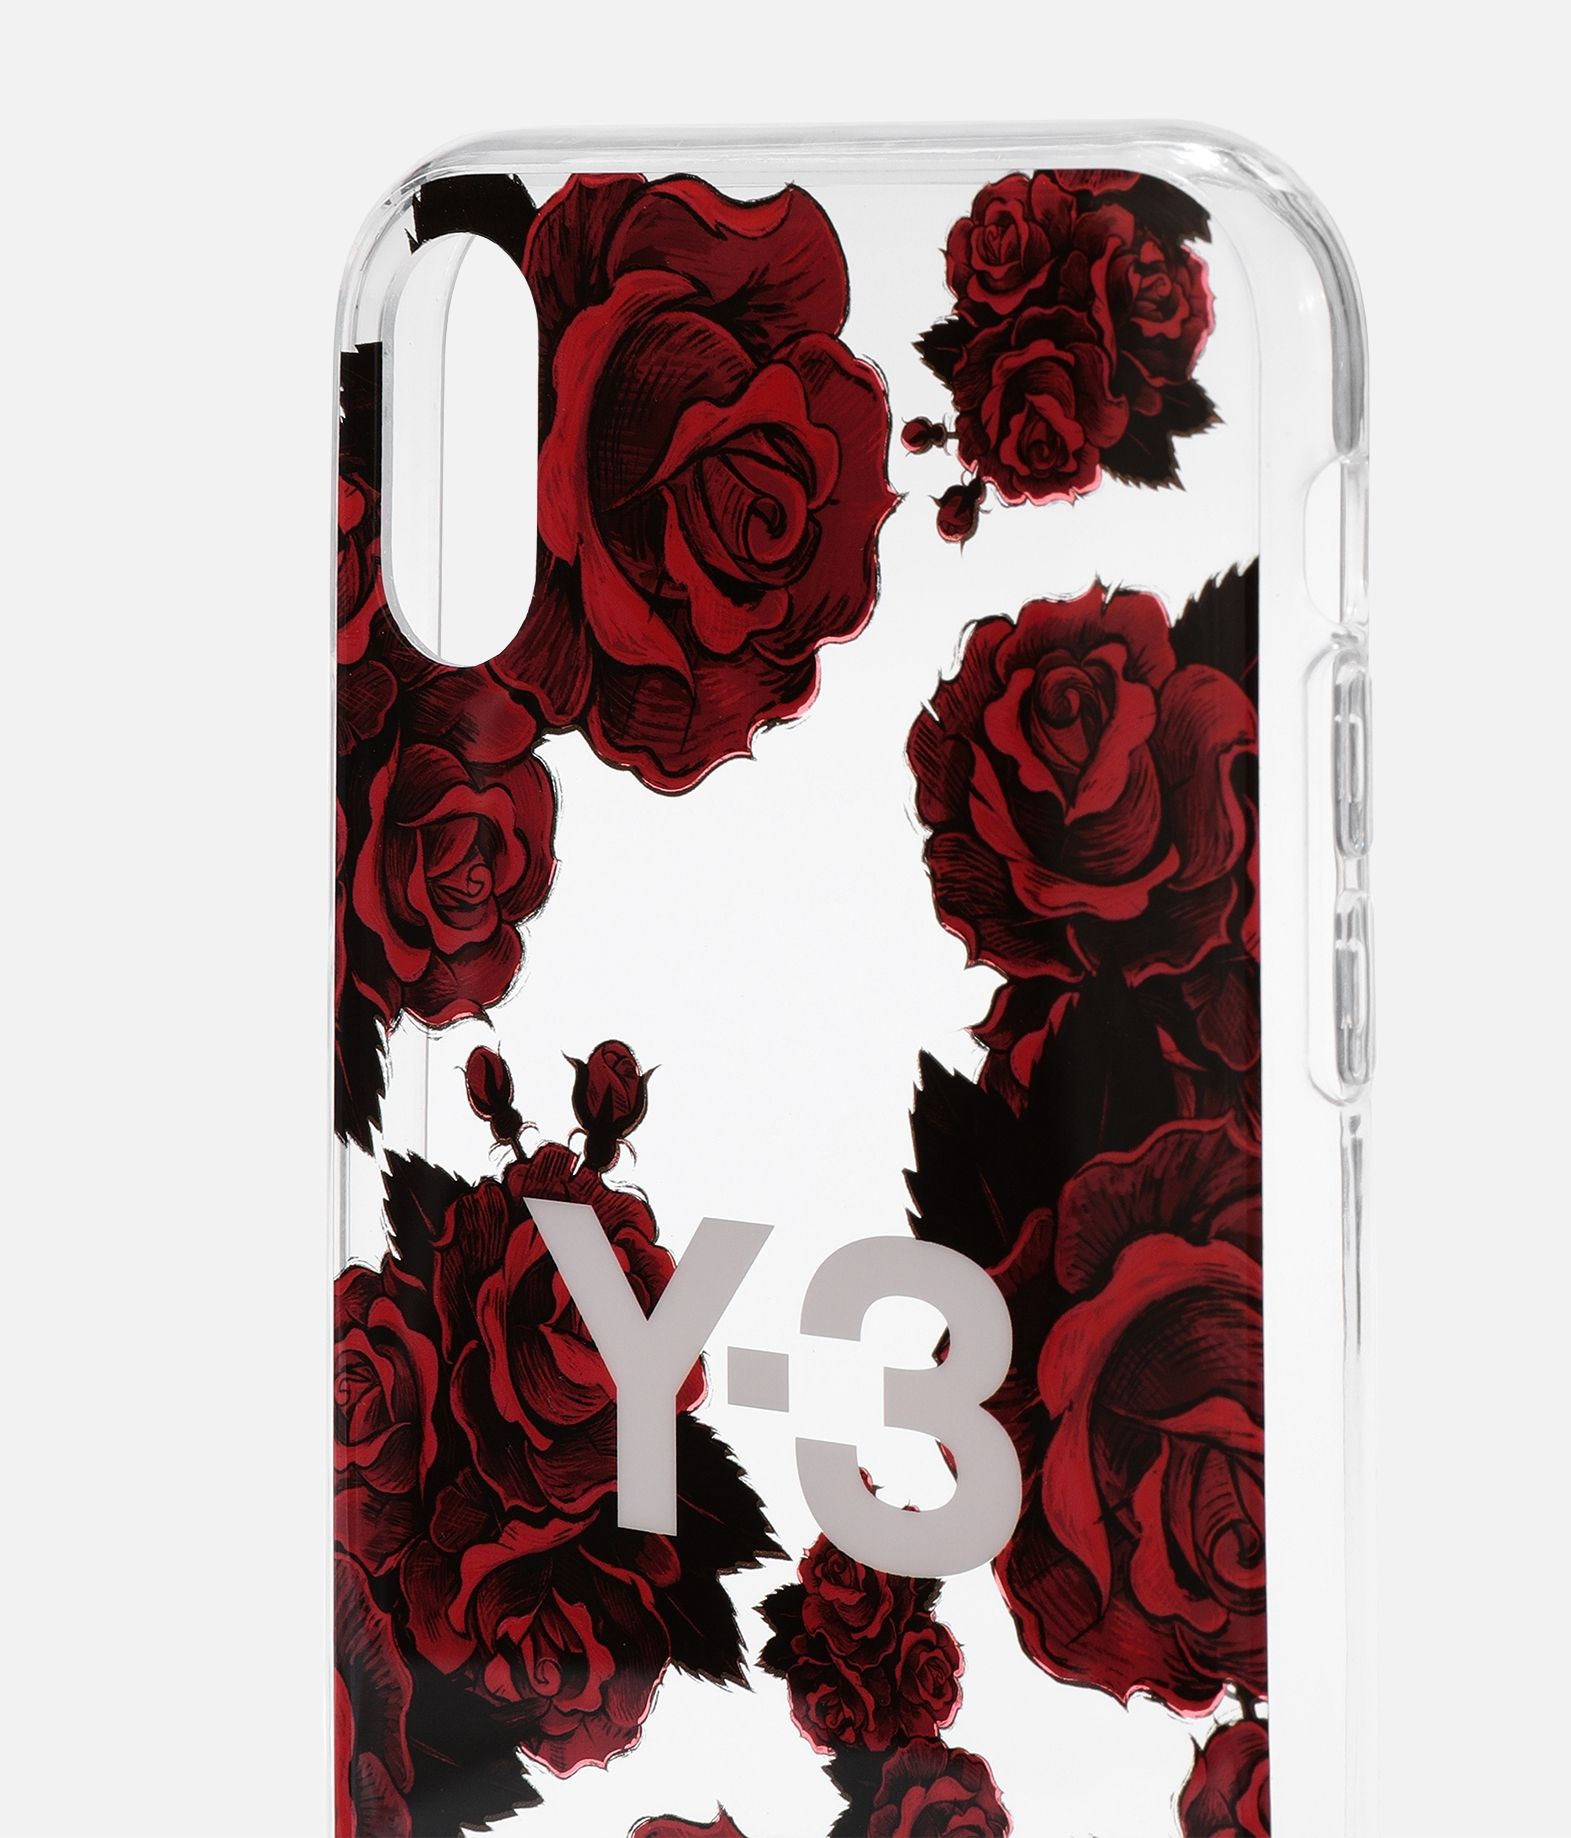 Y-3 Y-3 Snap Case Flower Graphic iPhone 6.1  Phone case E d